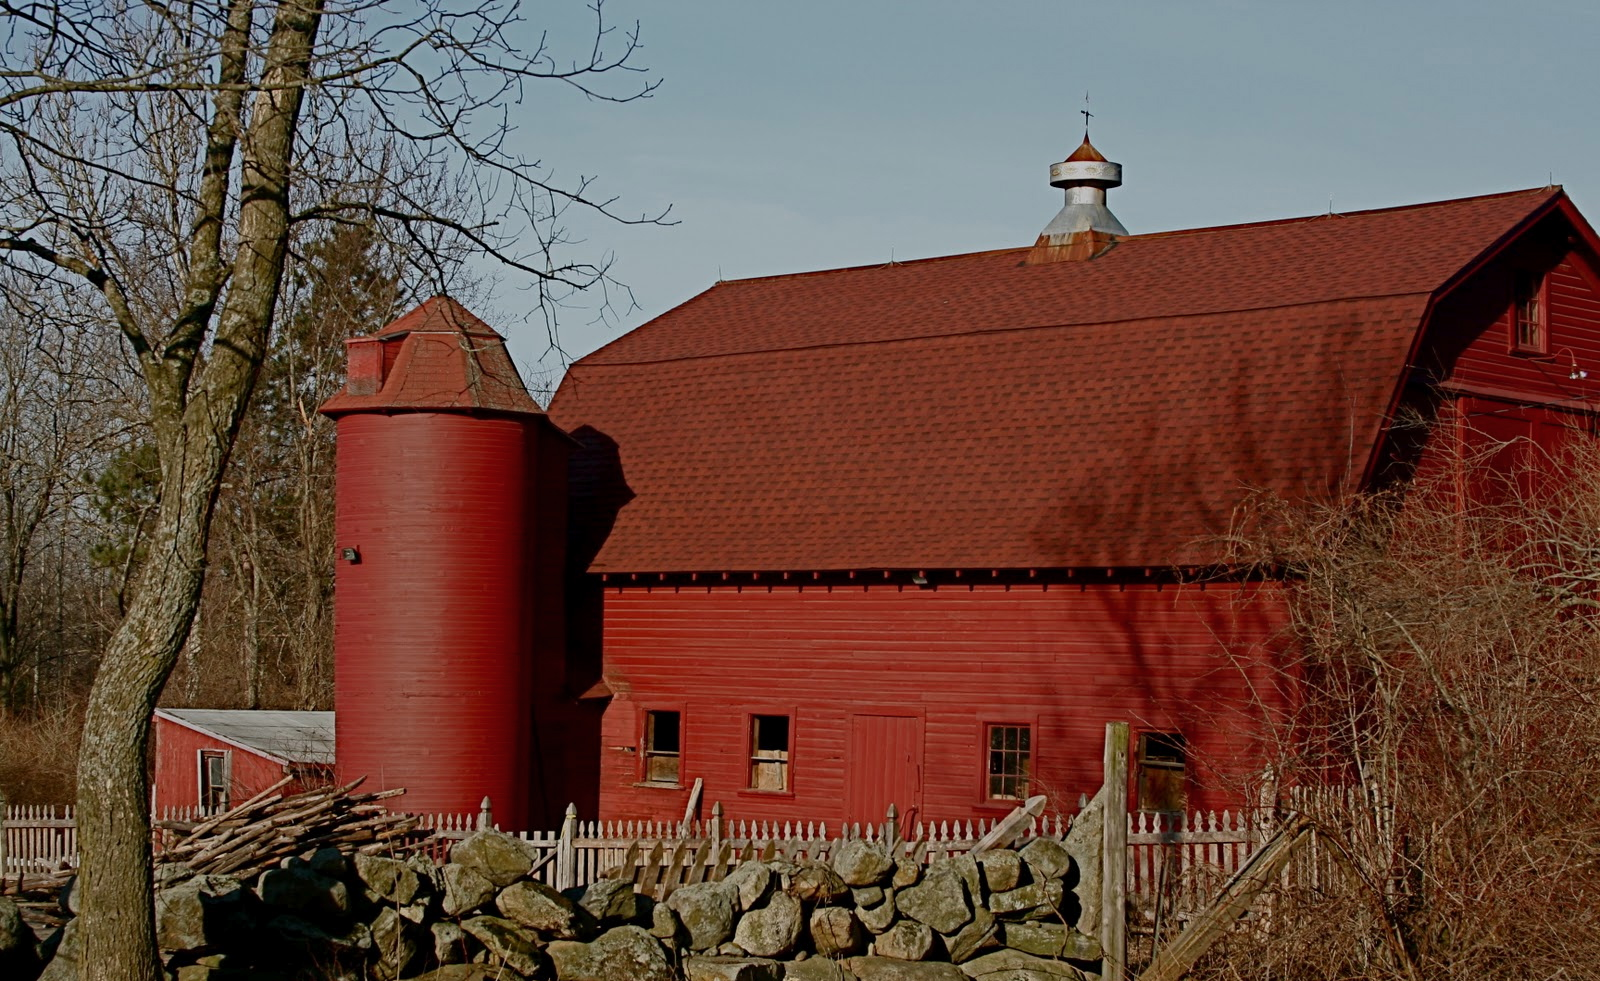 Trucks And Red Barns: Why Are Barns Usually Painted Red?